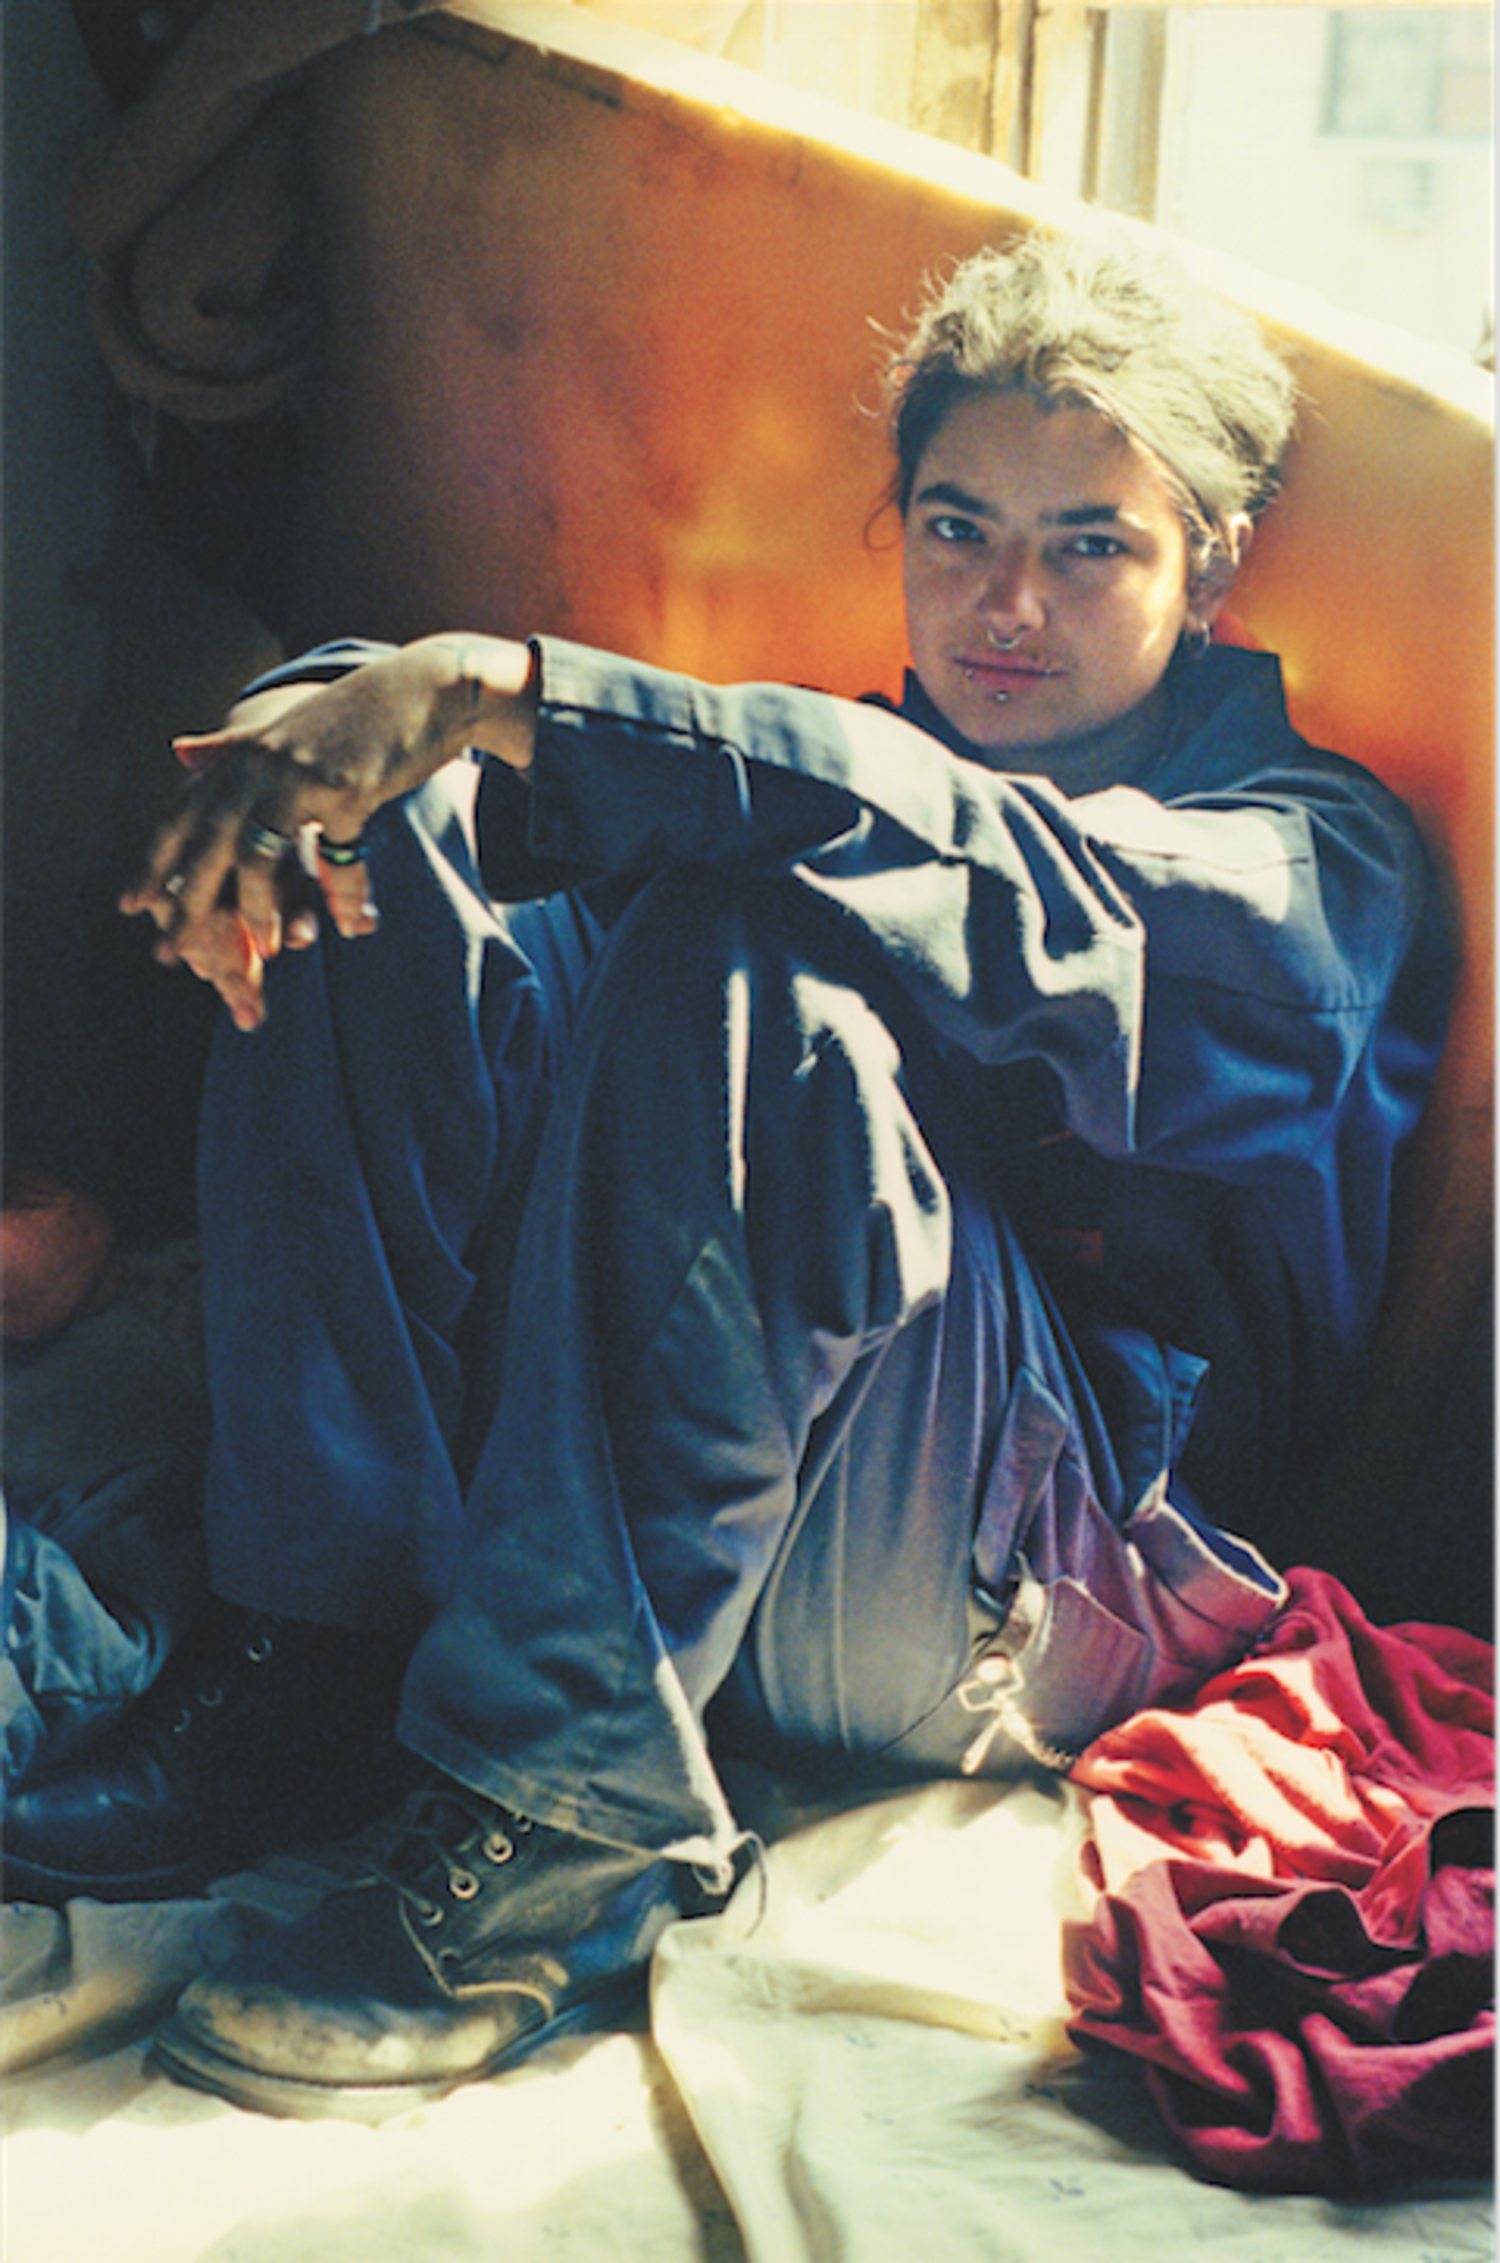 Jen (on Bed), Fifth Street Squat, 1995